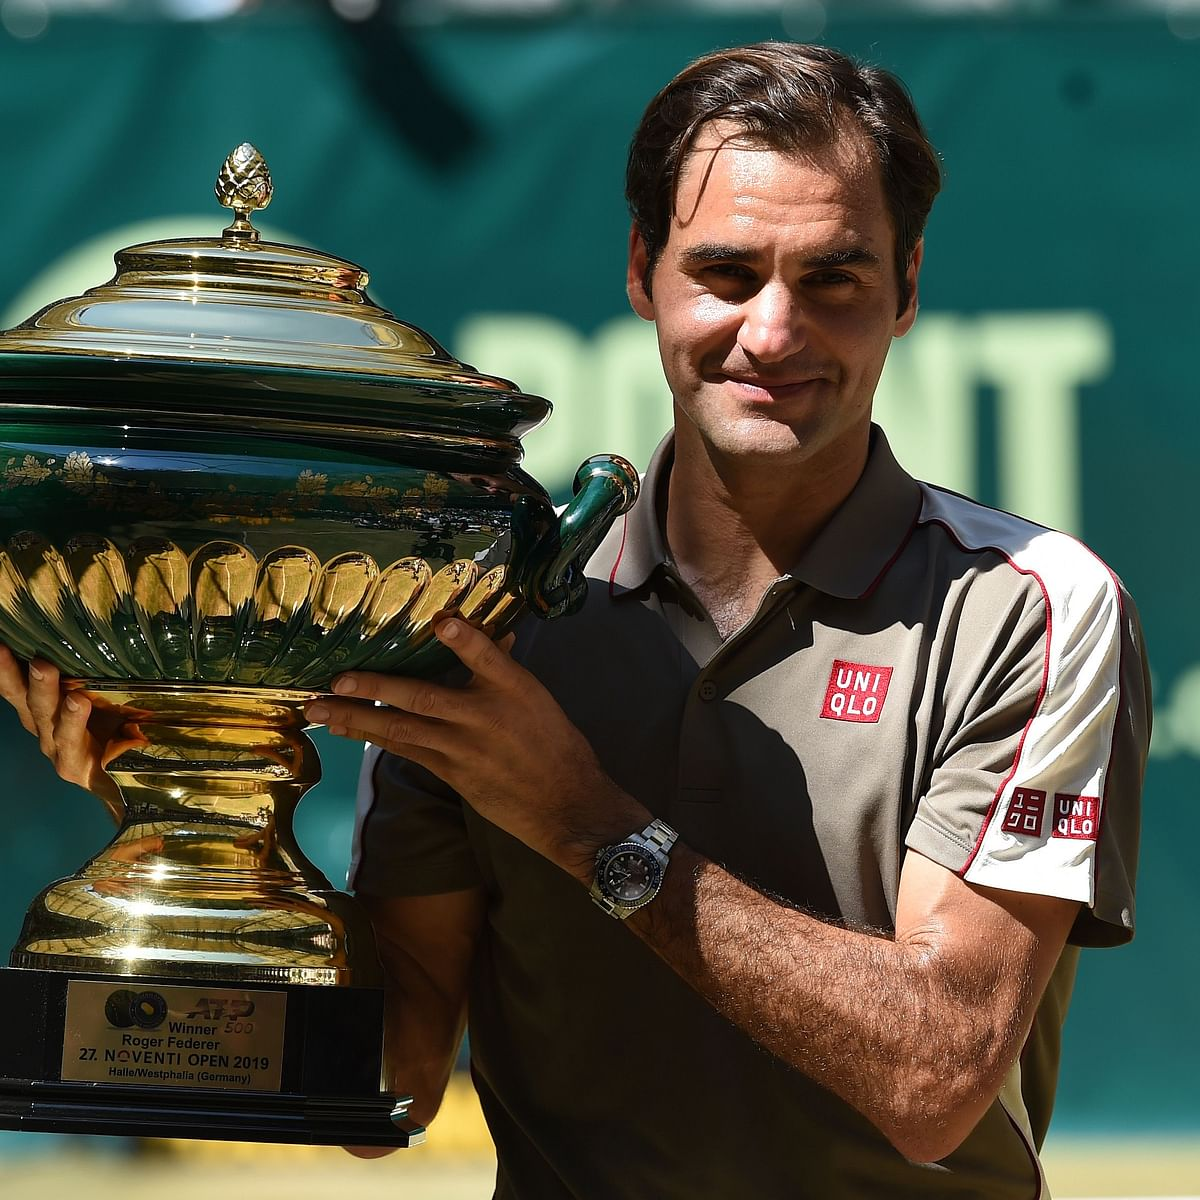 Roger Federer wins 10th Halle title, pursues 9th Wimbledon victory